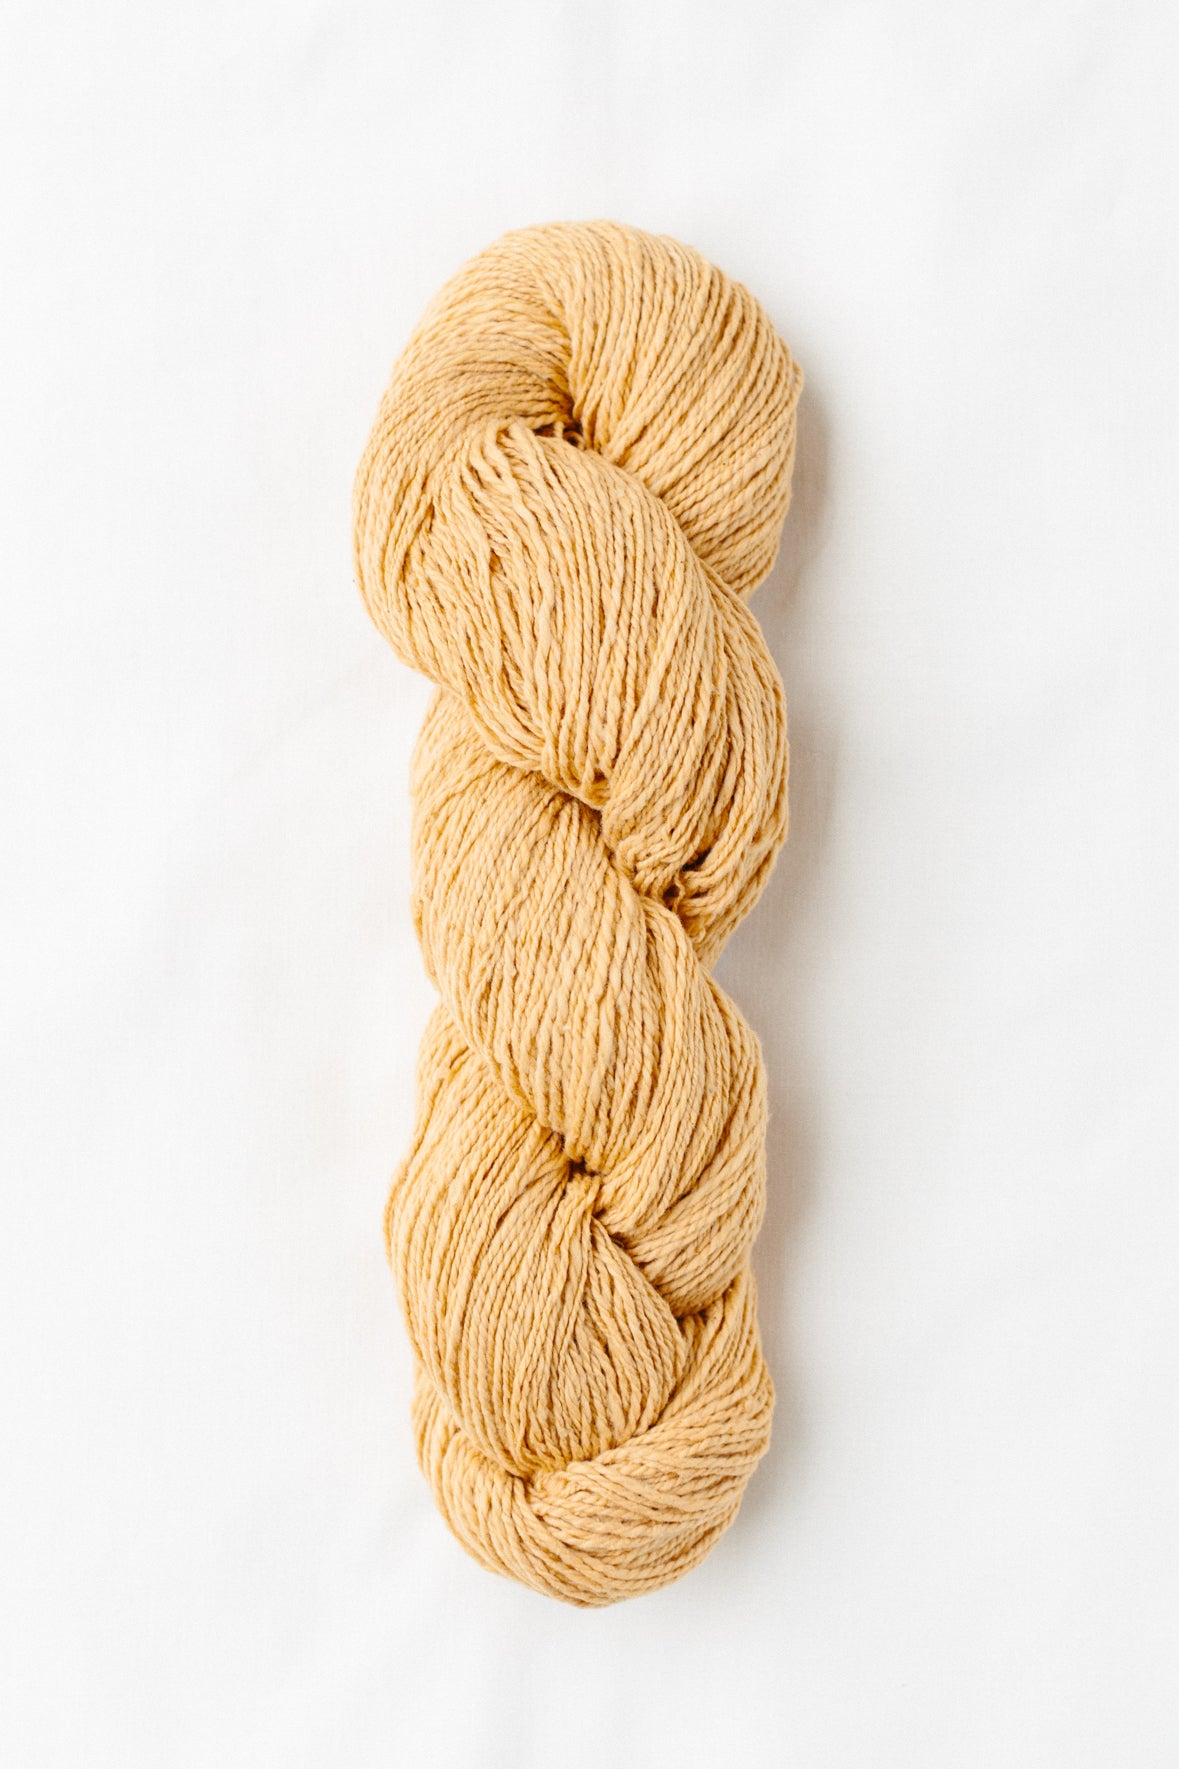 Ethiopian Hand Spun Cotton Yarn - Cosmos Blush